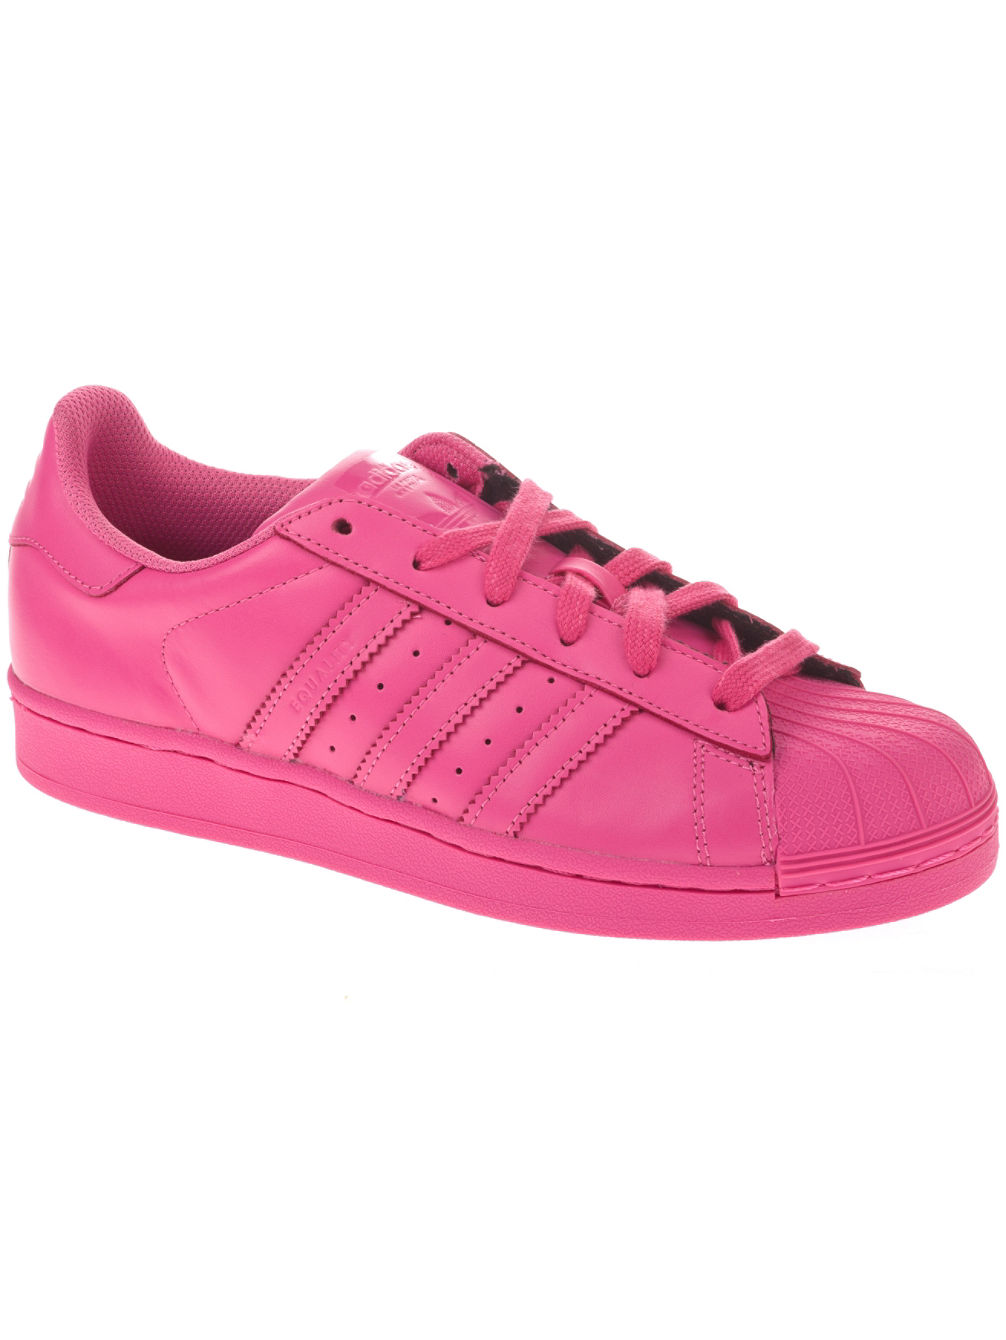 Supercolor Superstar Sneakers Women